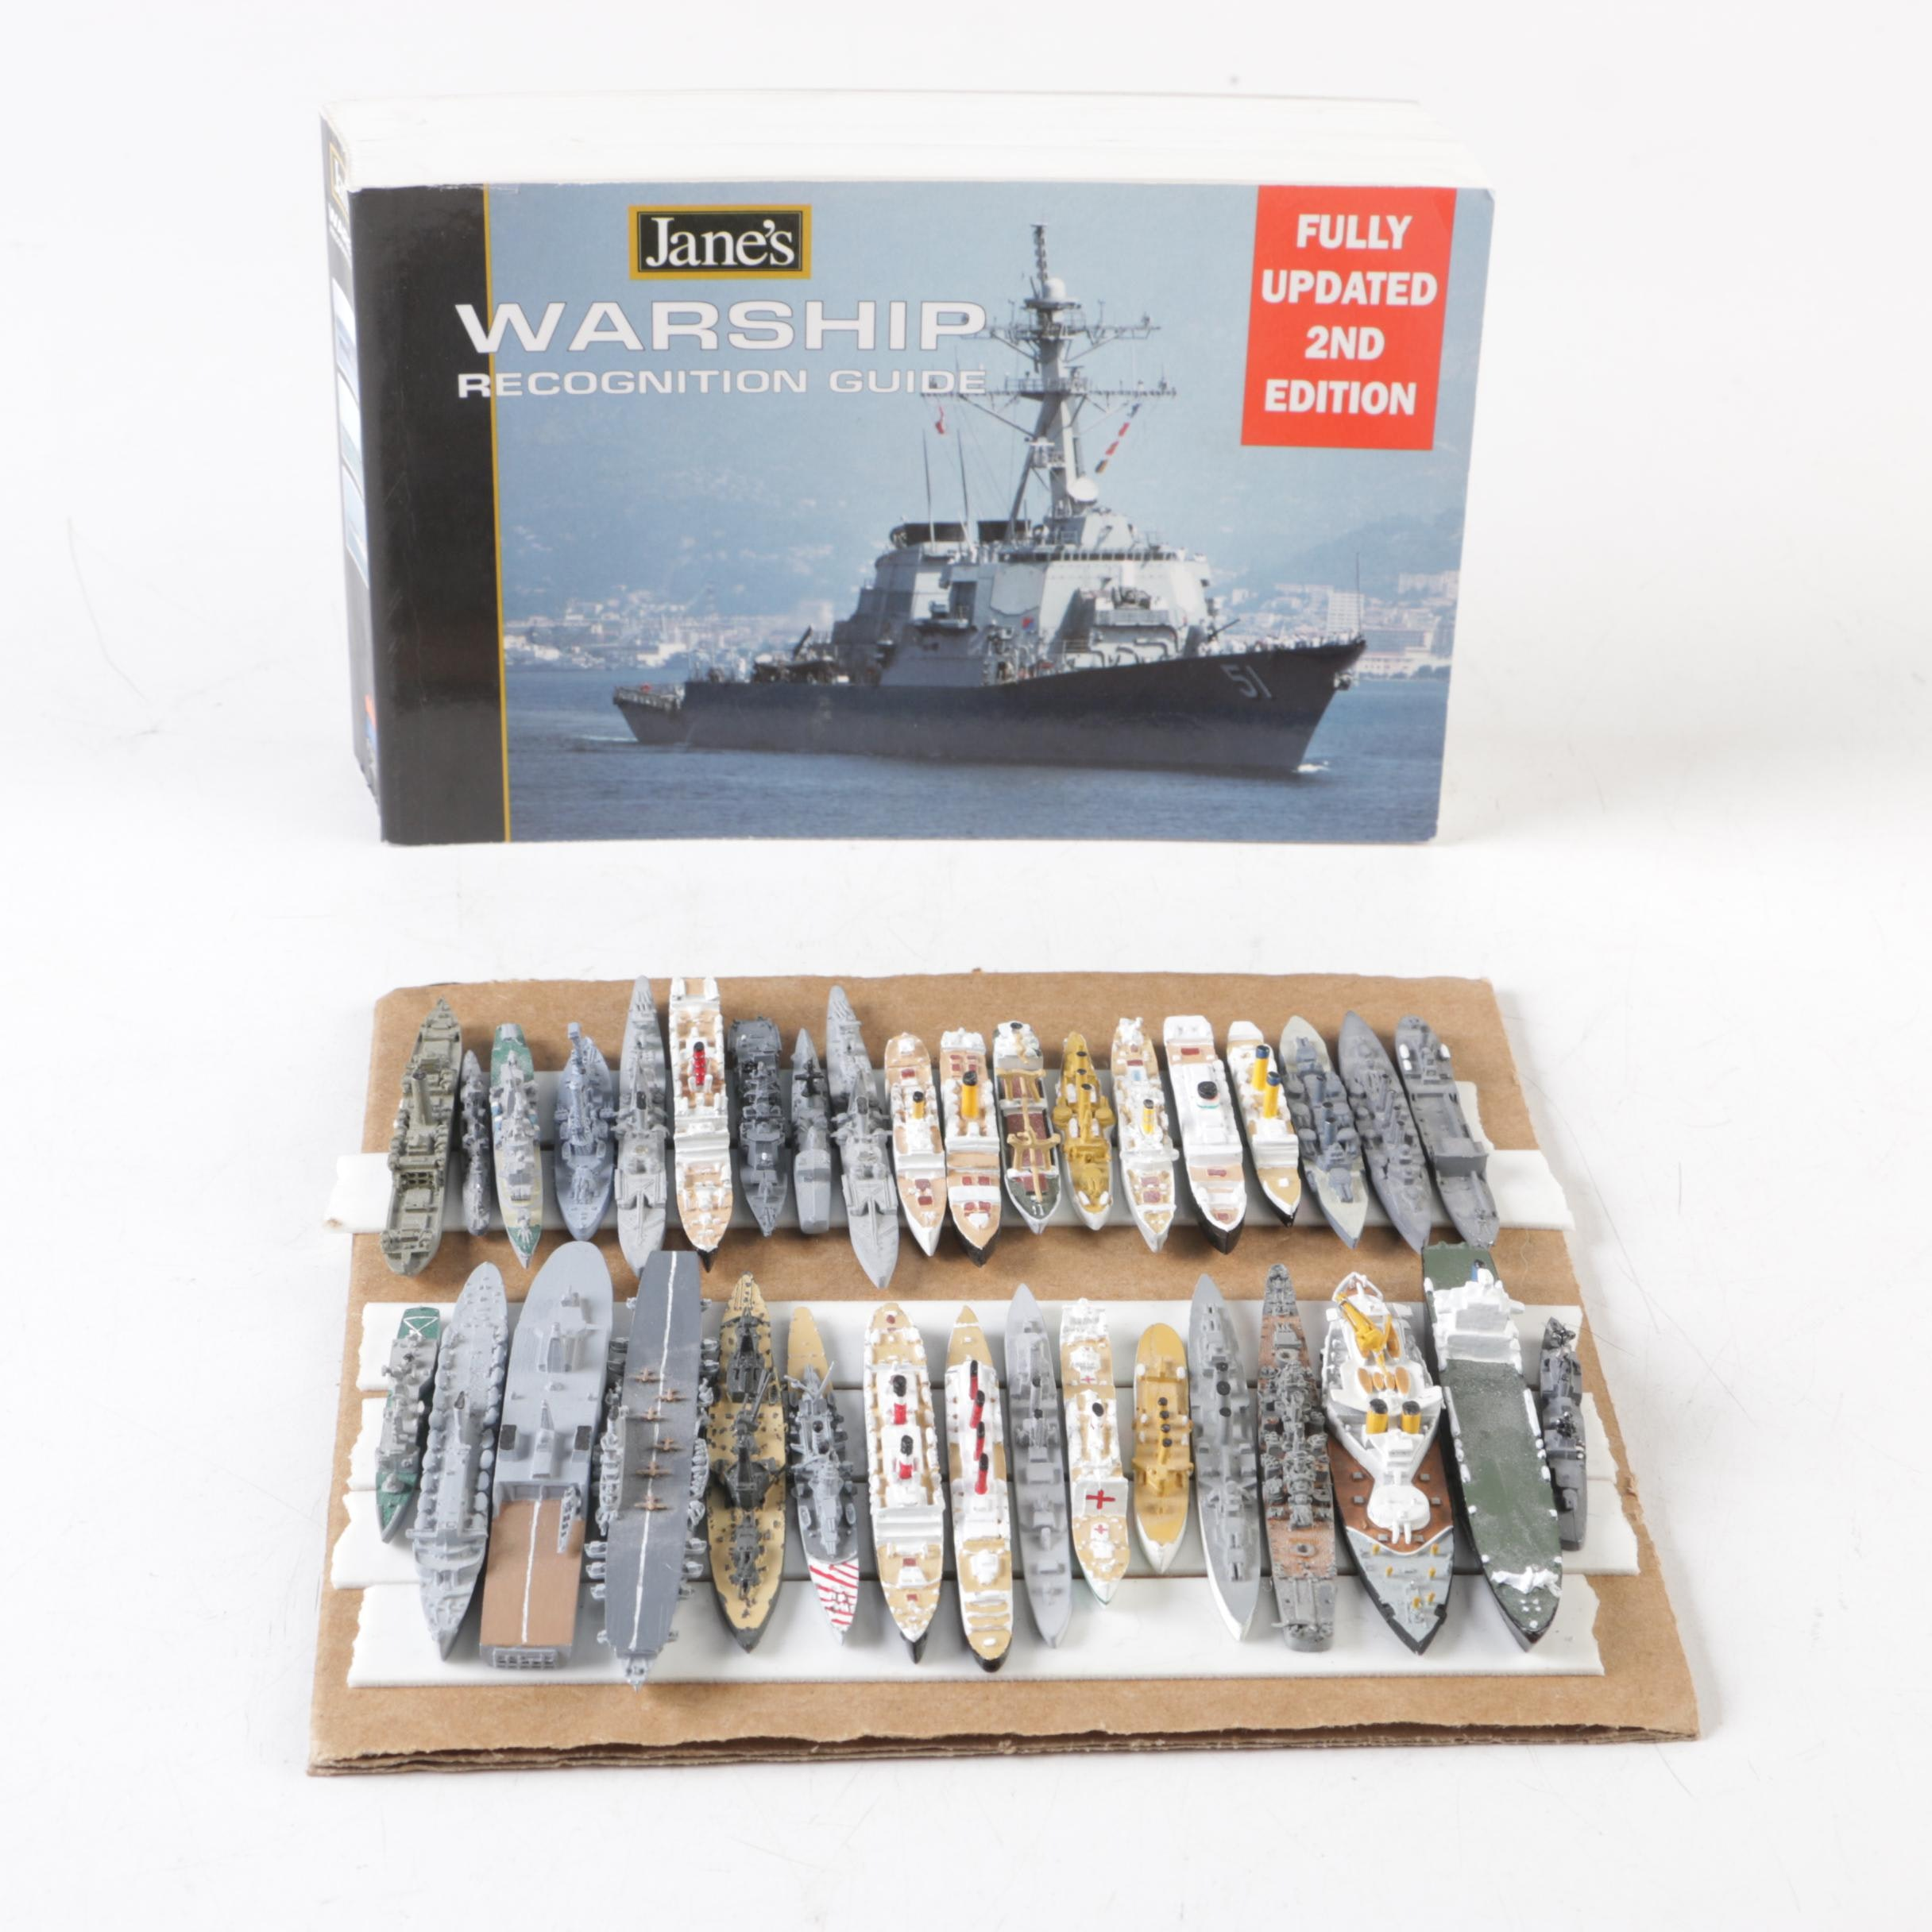 """1999 """"Jane's Warship Recognition Guide"""" and Model Naval Vessels"""